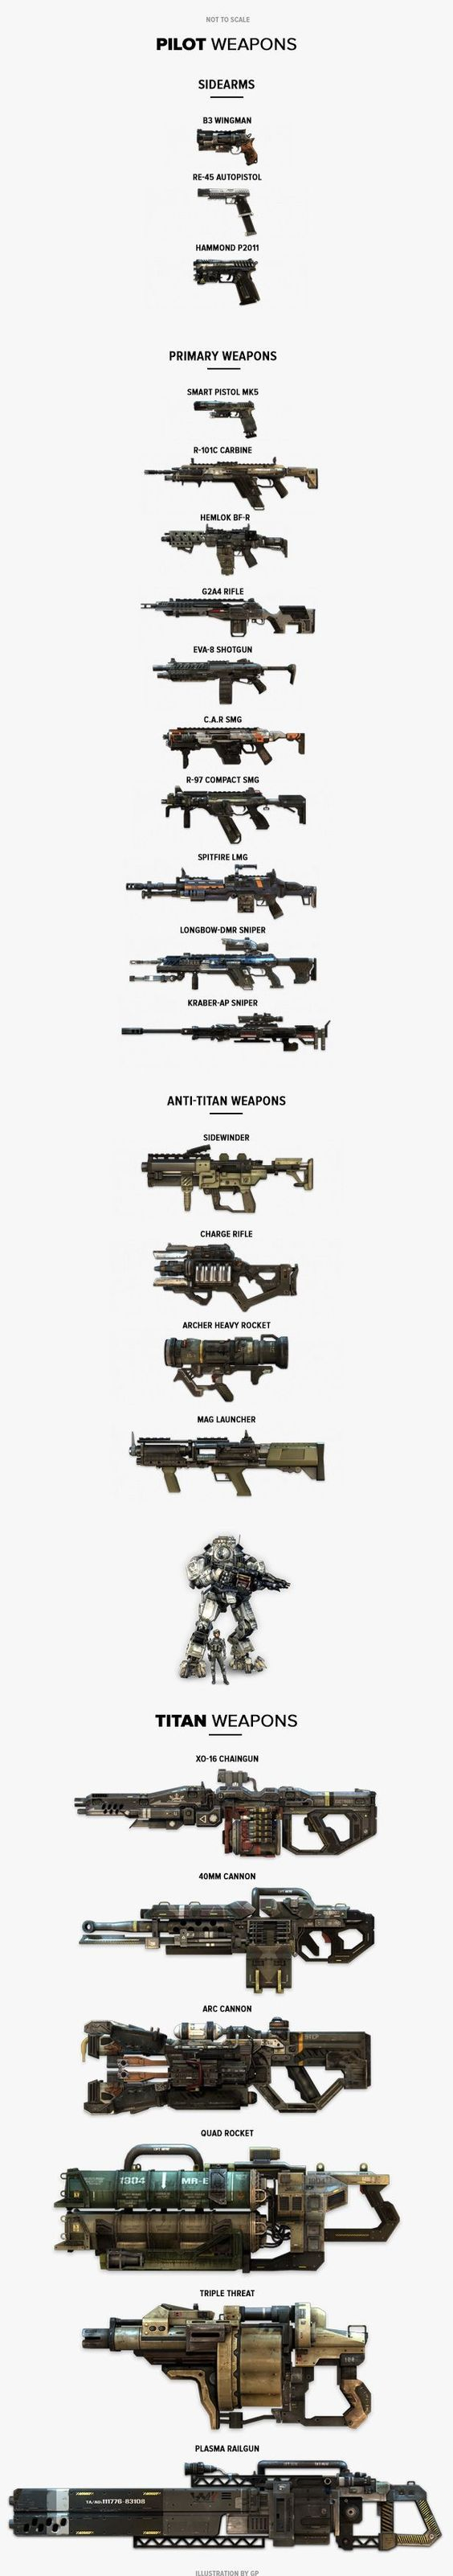 titanfall-weapons-overview-gear-patrol-sidebar-